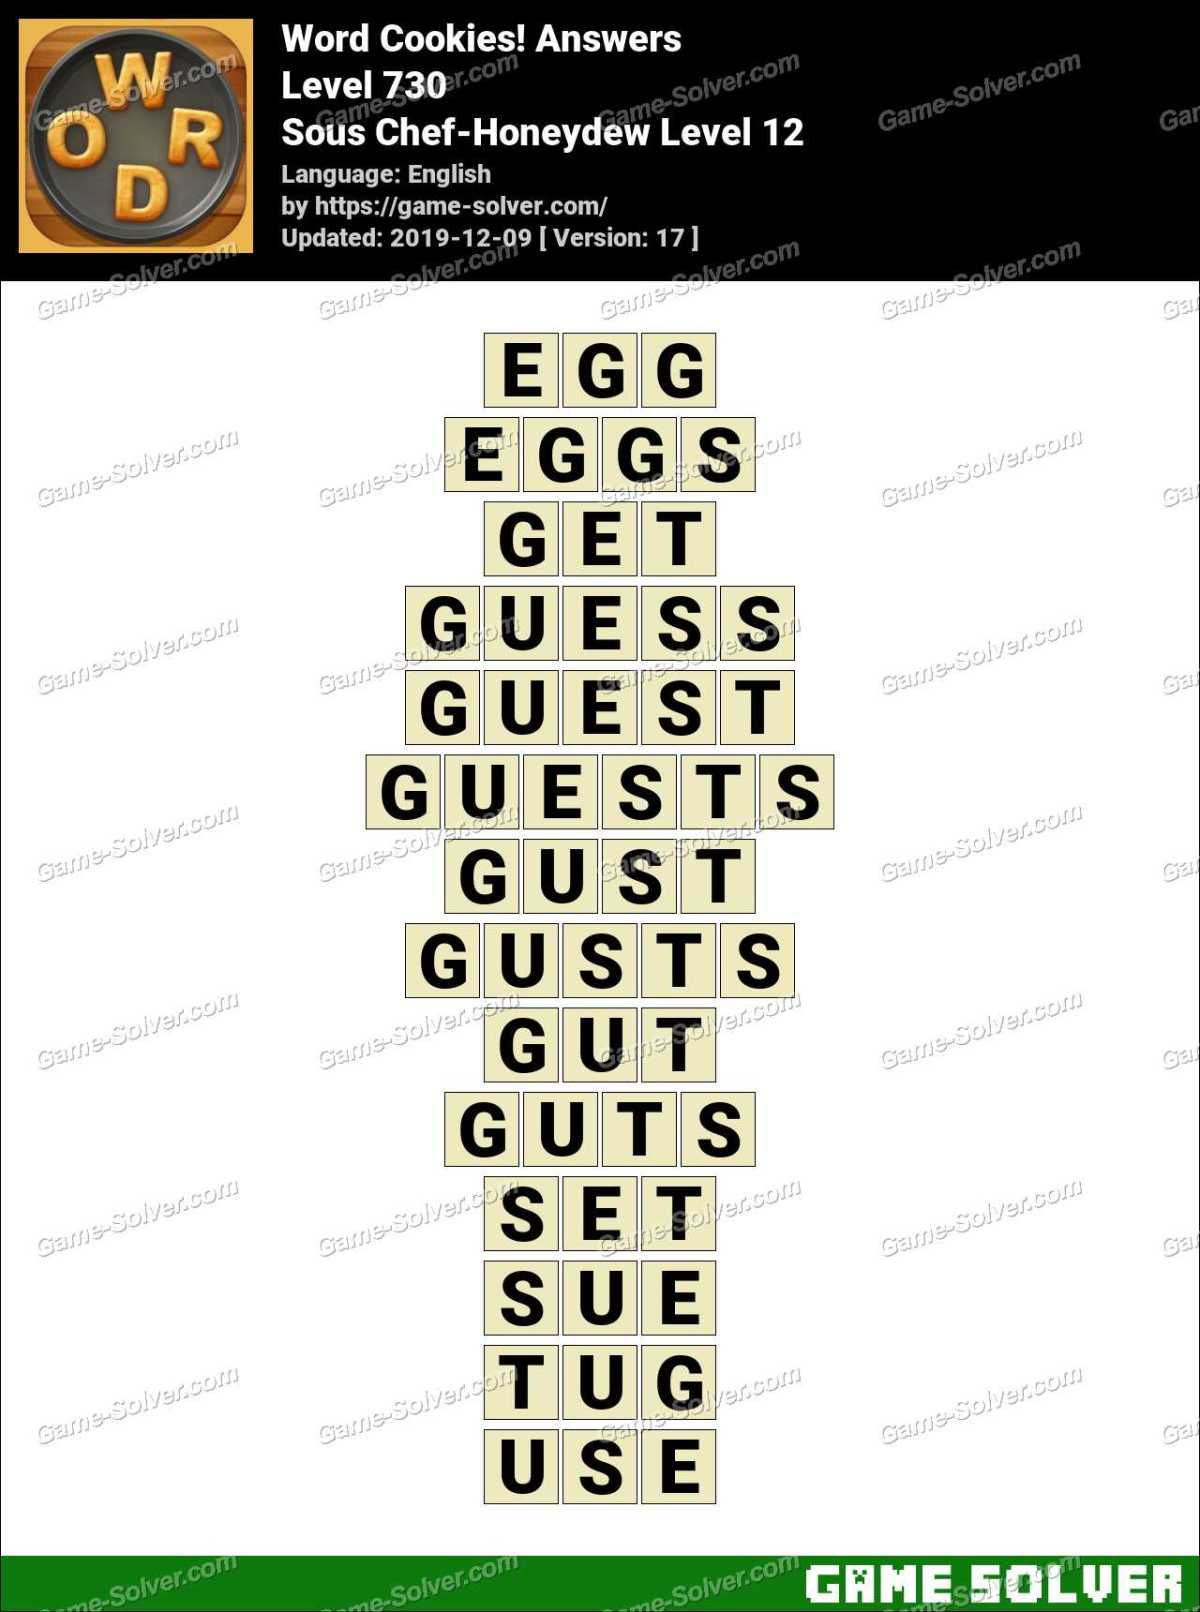 Word Cookies Sous Chef-Honeydew Level 12 Answers